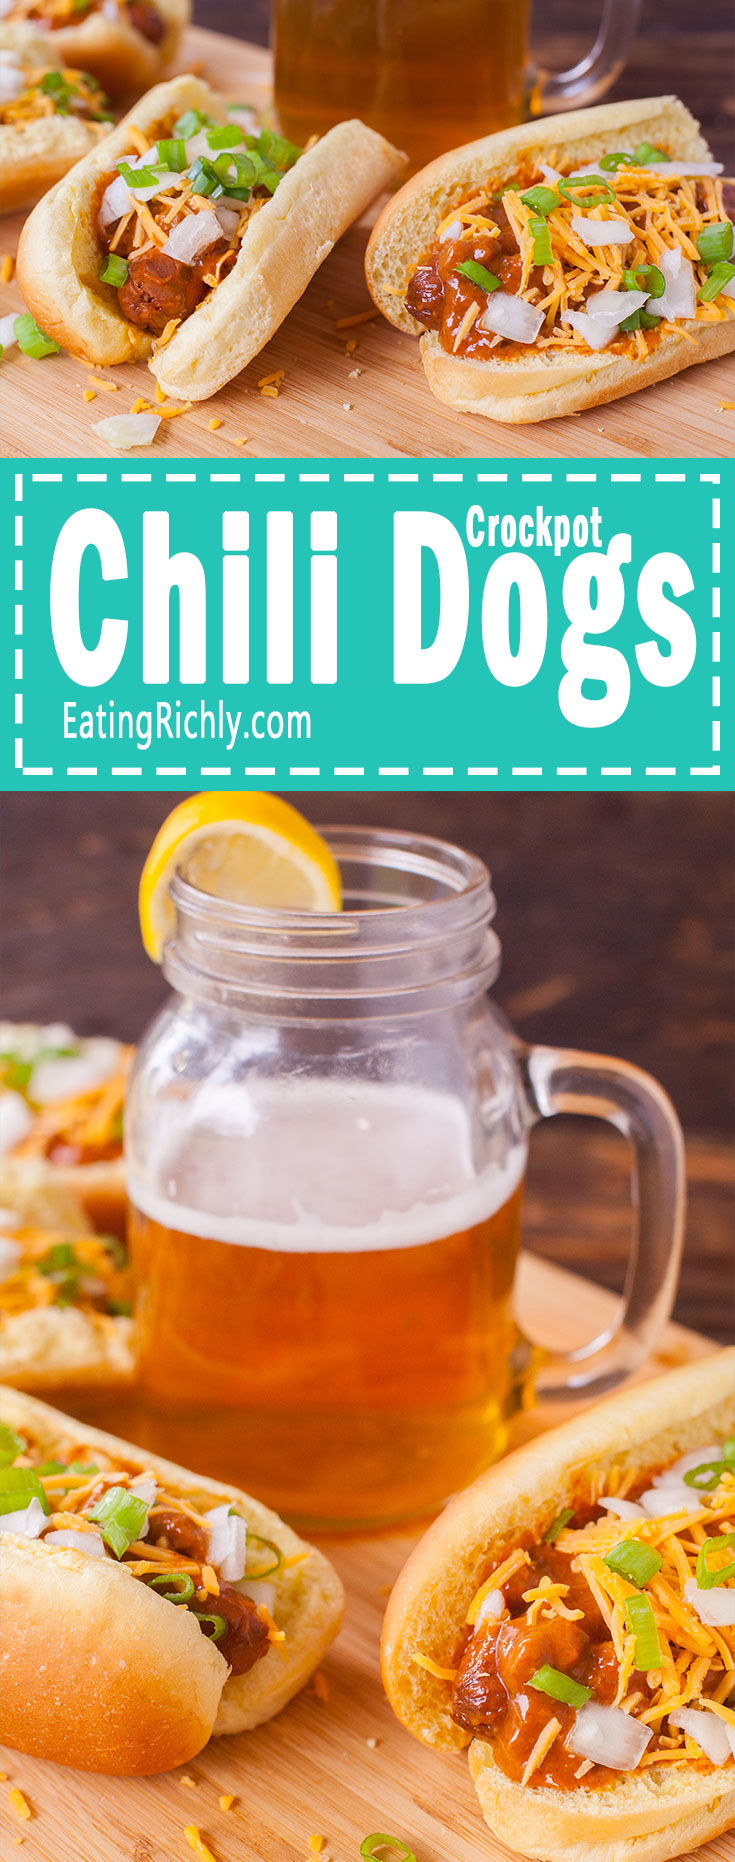 These slow cooker hot dogs are swimming in a chili cheese hot tub of deliciousness, and only need THREE ingredients. Which means you can have a cold beer and play with the kids instead of standing over a hot stove! From EatingRichly.com